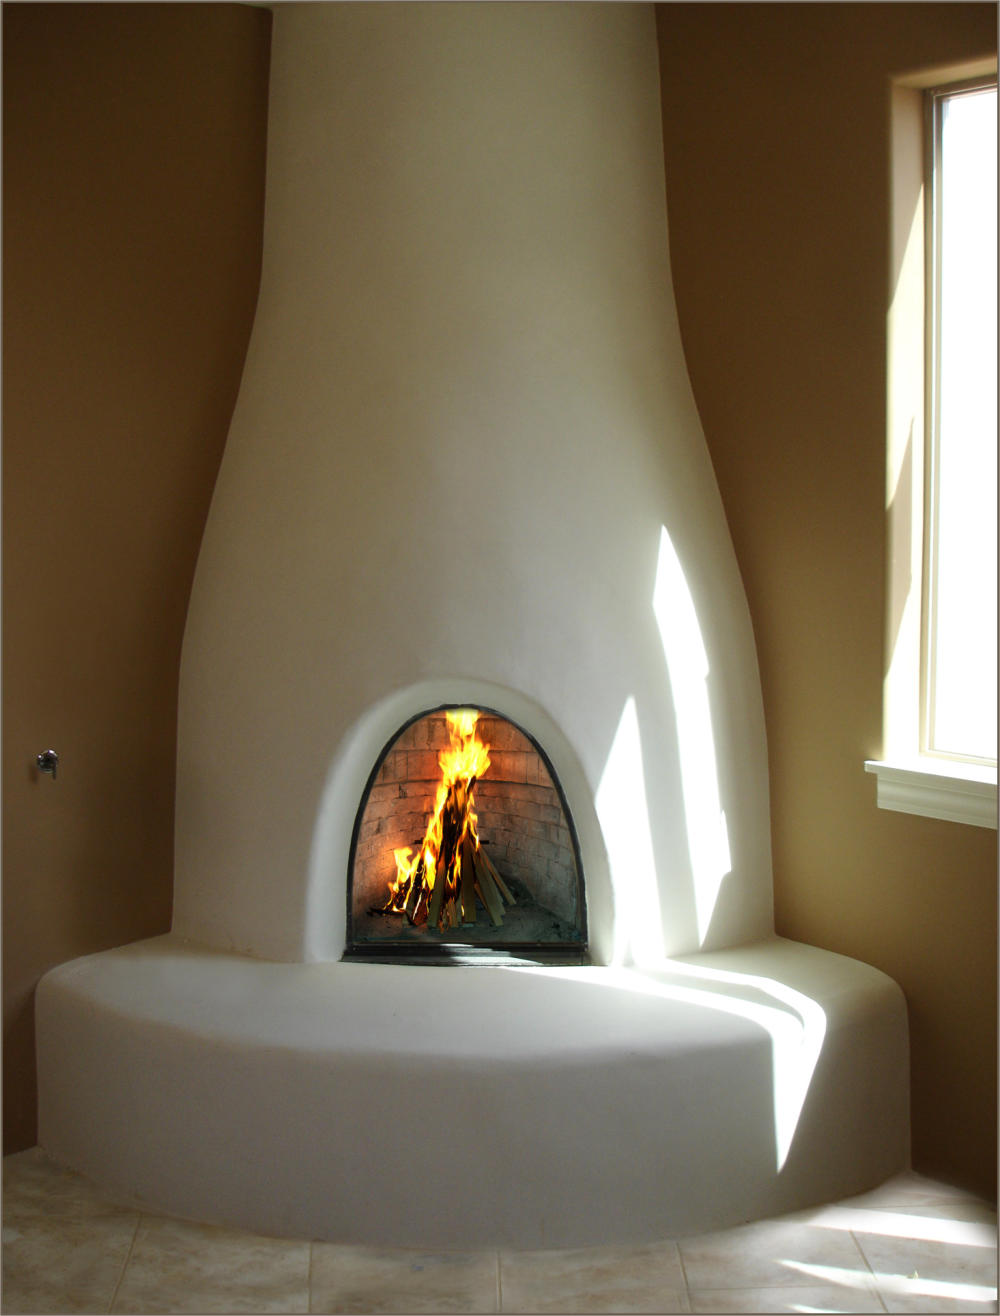 Remarkable Adobelite Kiva Fireplace Gallery Interior Design Ideas Oteneahmetsinanyavuzinfo